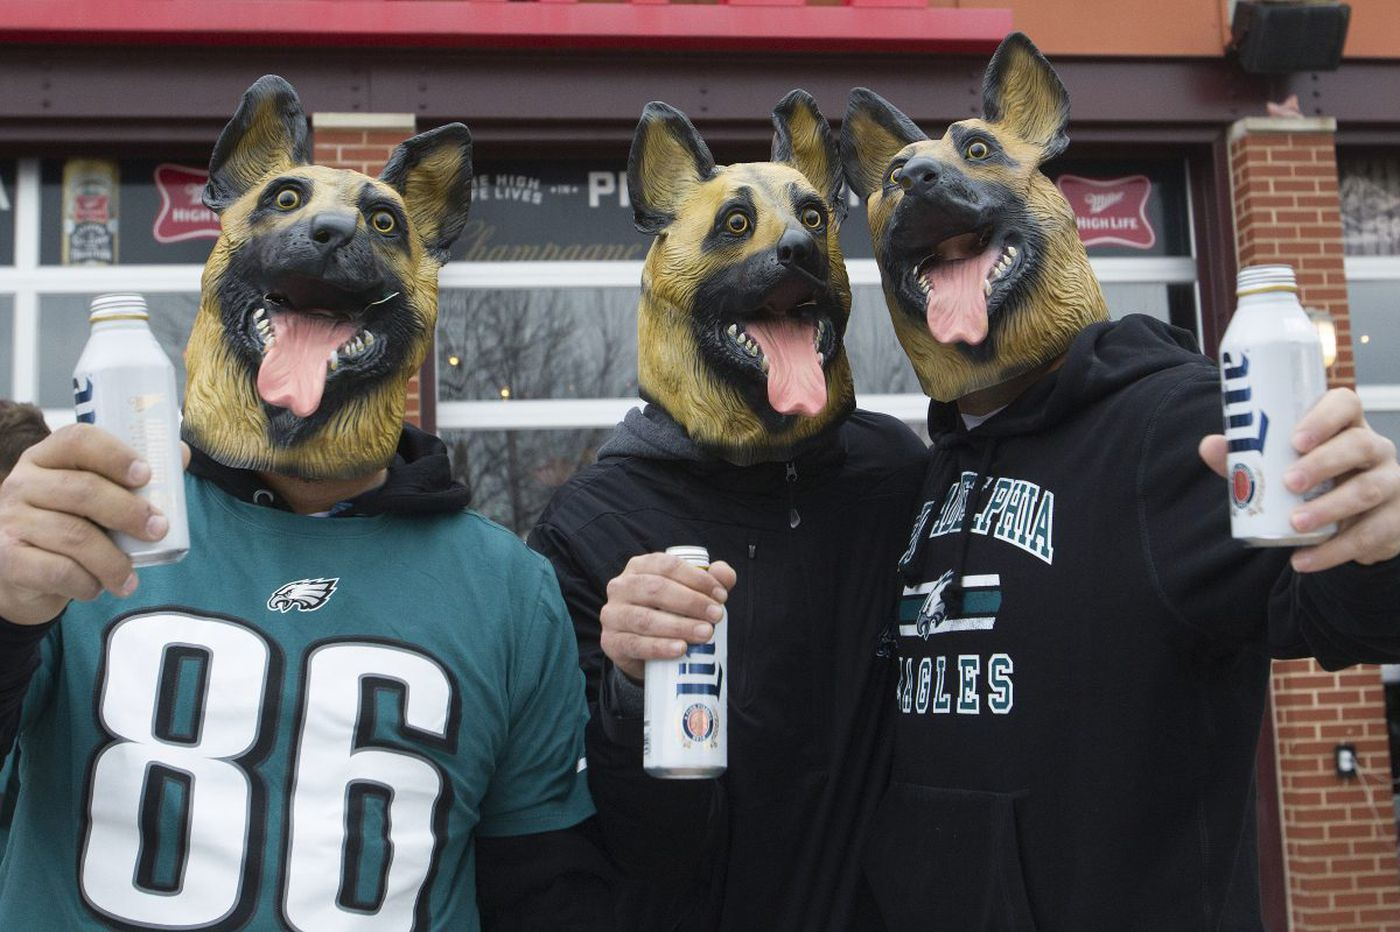 Eagles fans are doggone crazy for those creepy underdog masks | Jenice Armstrong